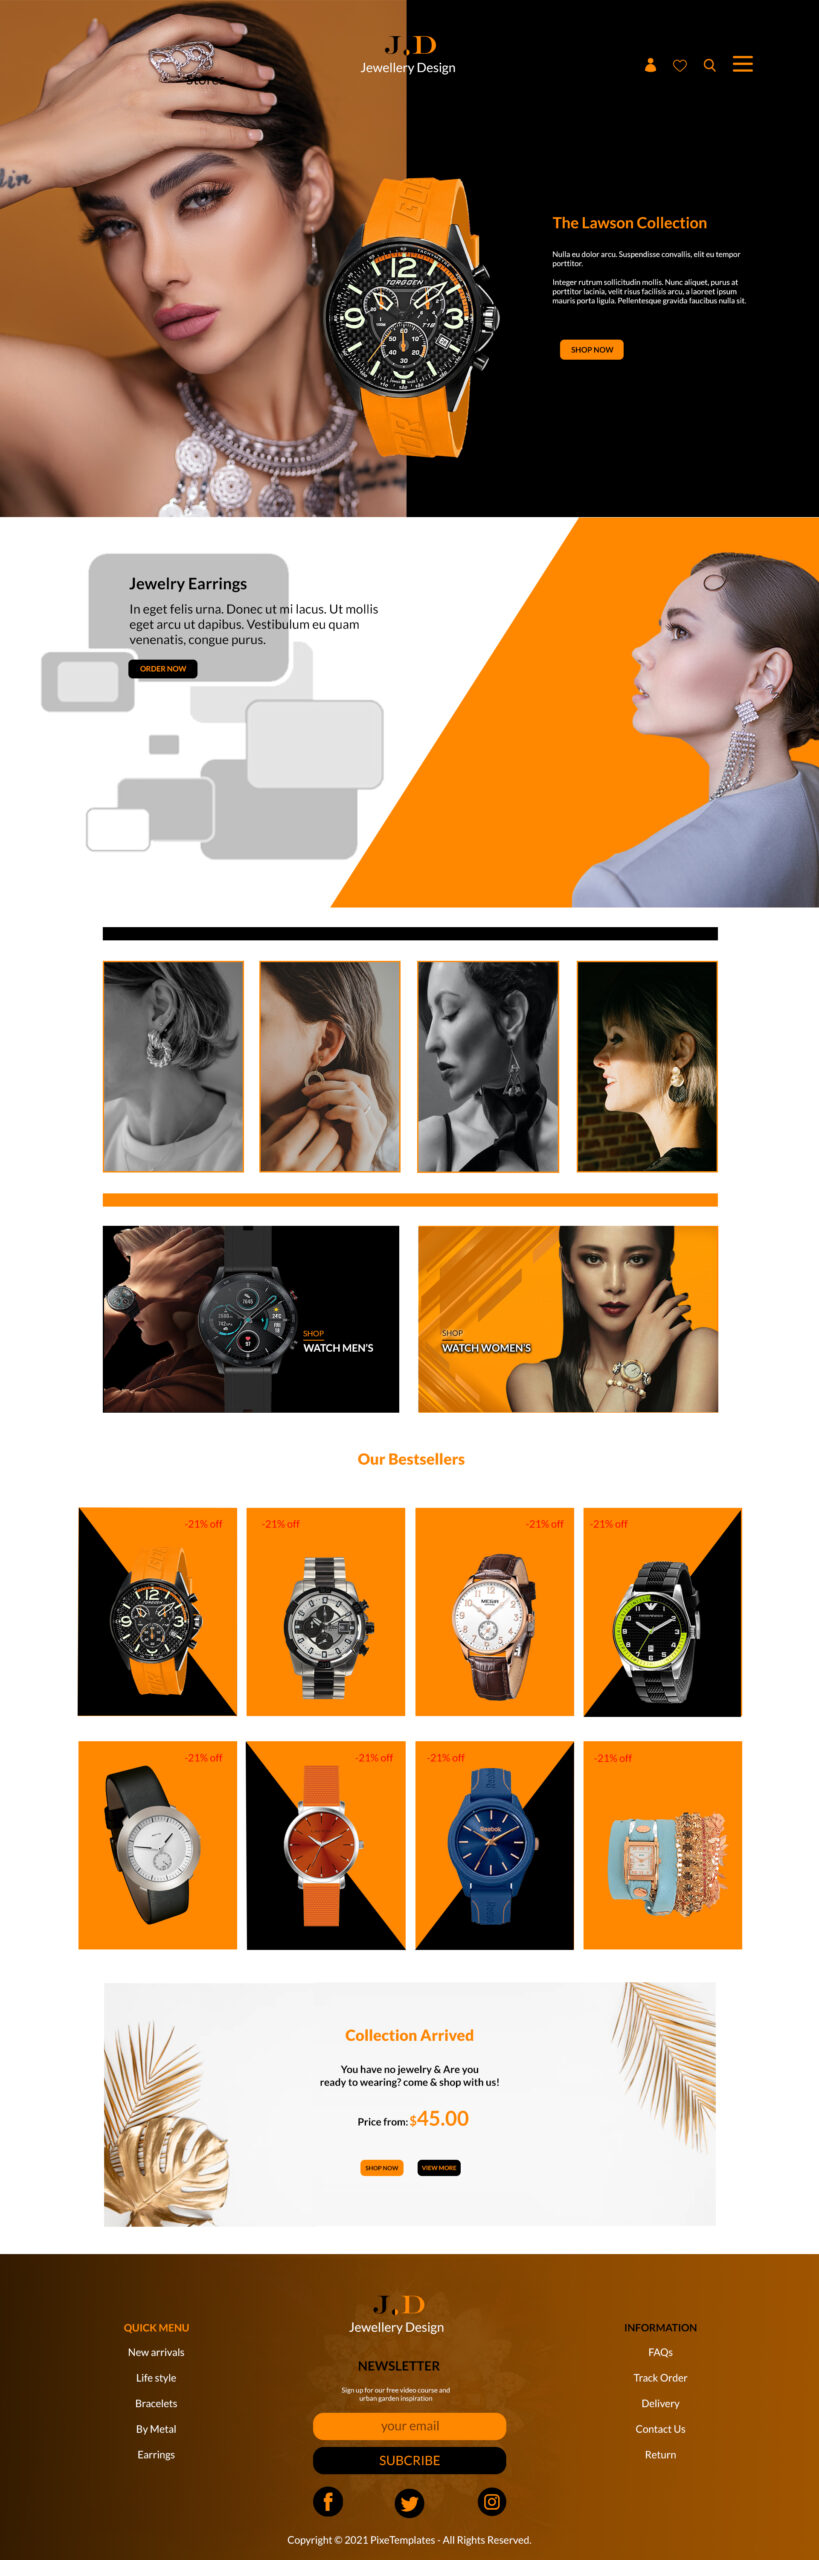 Free Web Interface for Jewelry Business